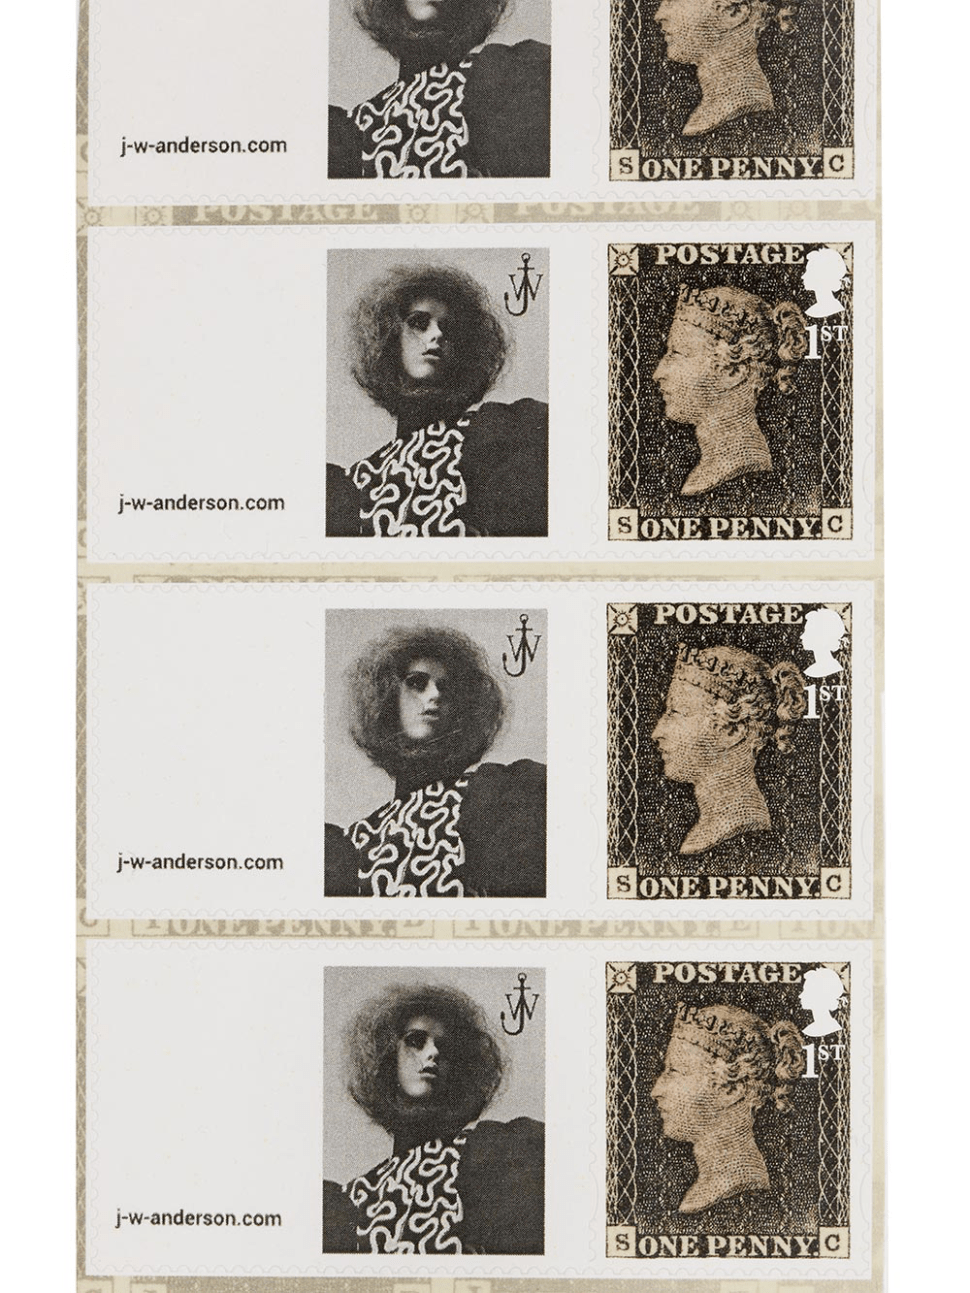 Fashion Designer J.W.Anderson Is Getting Into the Stamp Business